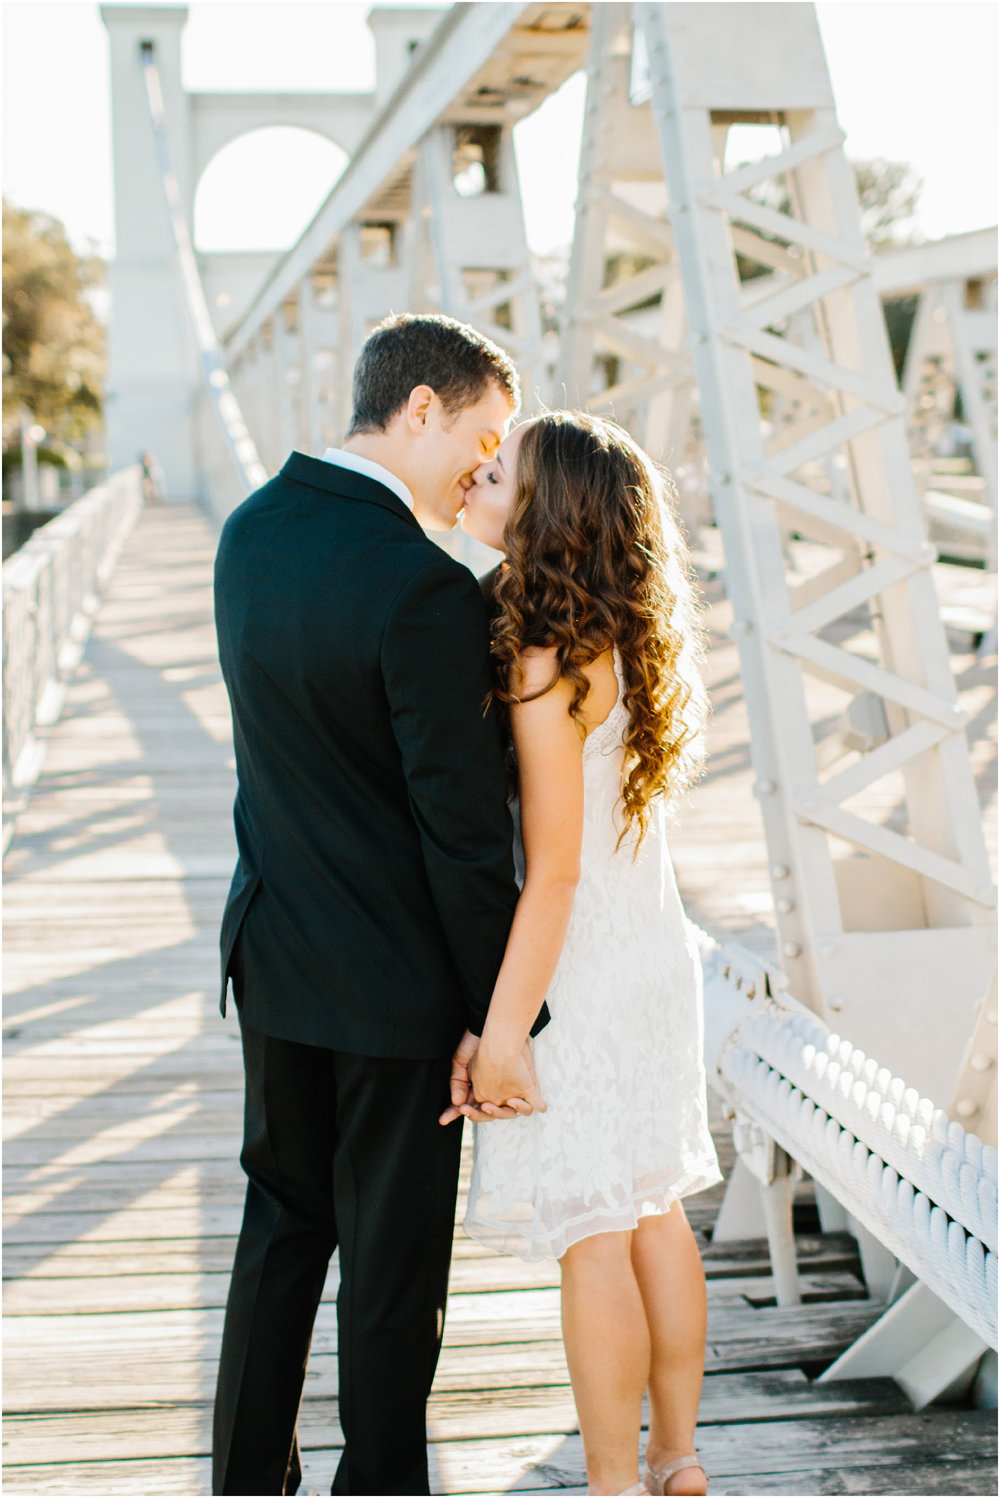 Downtown_Waco_Engagement_Session-52.jpg